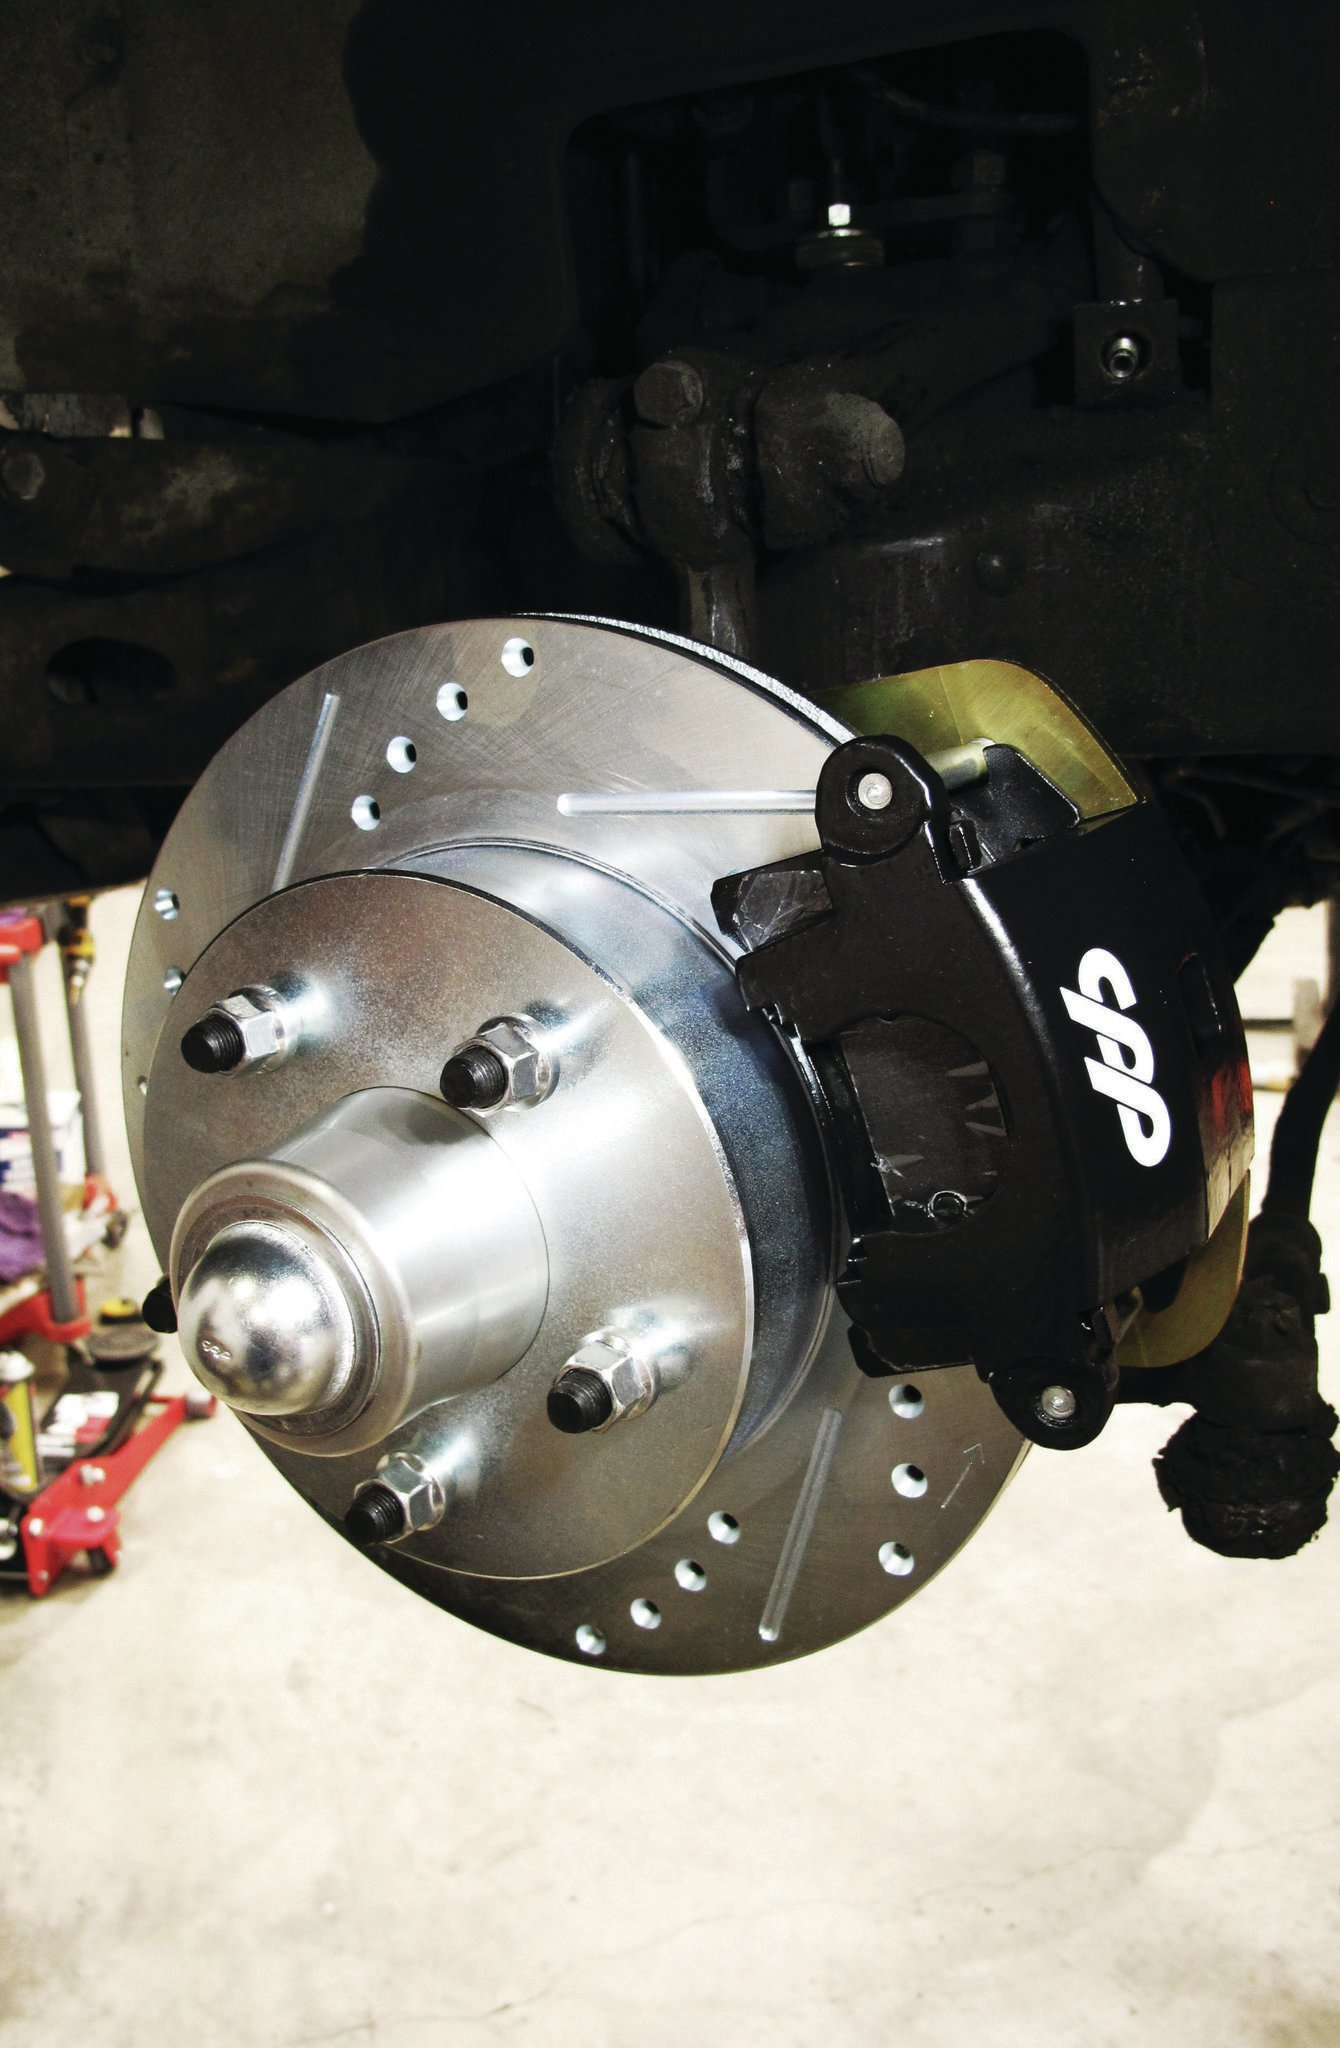 1955 Cadillac Coupe Deville Disc Brake Conversion Front 20 About This Editor